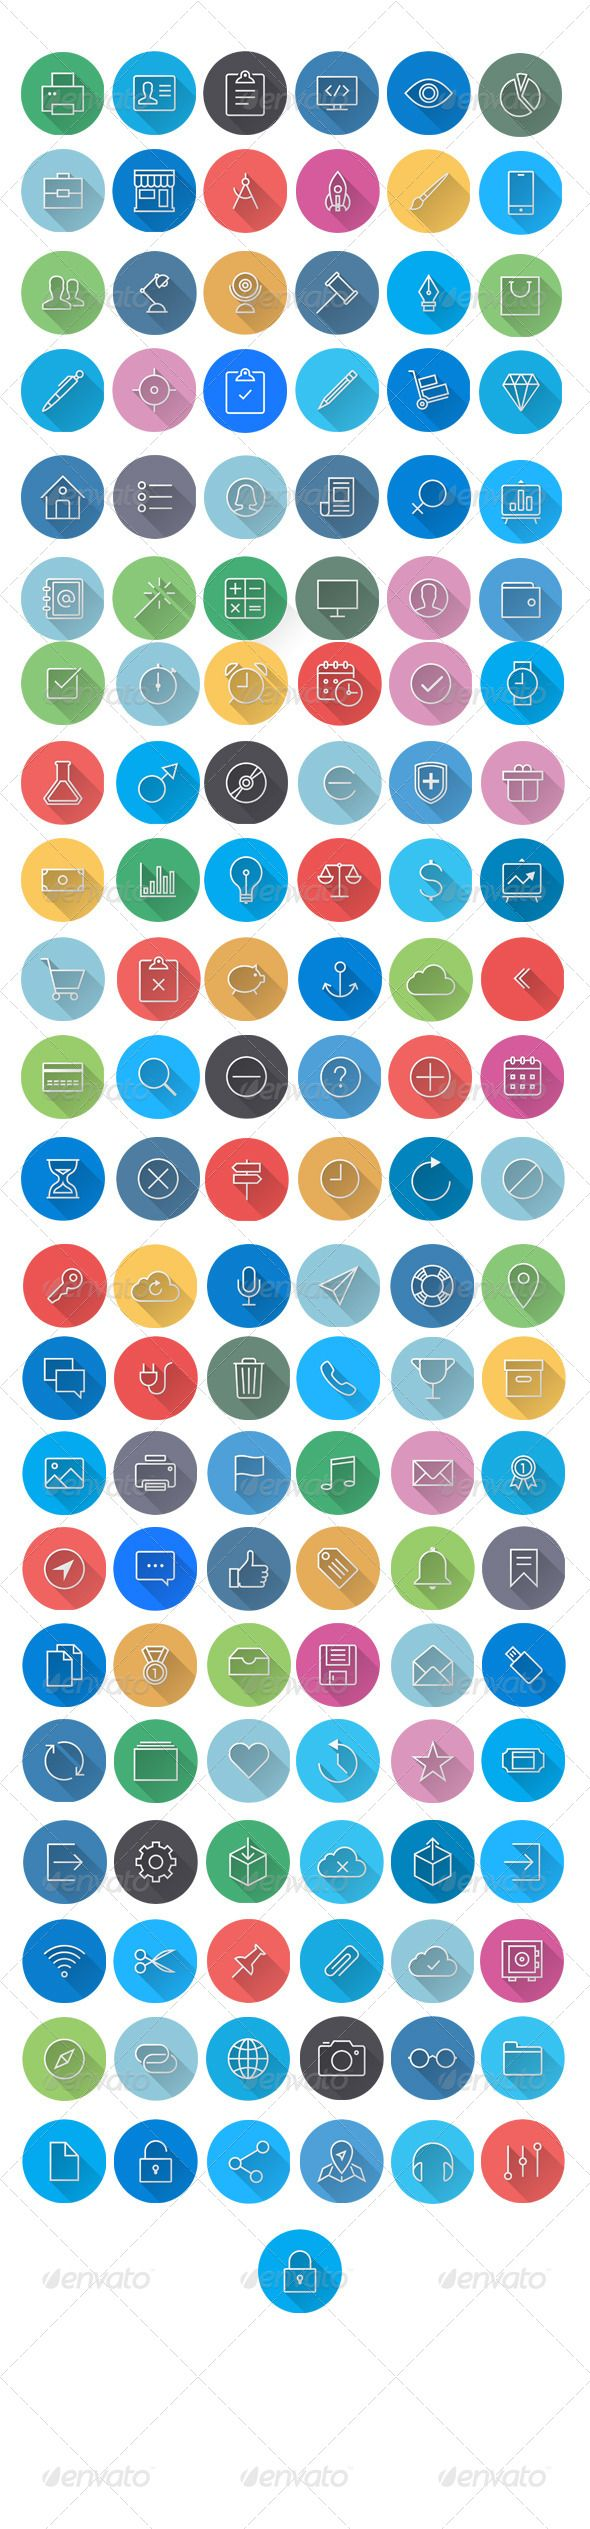 Flat Icons  	Mobile marketing, app, app development, business, collaborations, colorful, communication, computer, consultancy, cross platform, development, flat icons, glyphs, graphics, icons, idea, interface, internet, line, long shadow, mac, media, modern, responsive, seo icons, social media, social network, stroke, touch, web